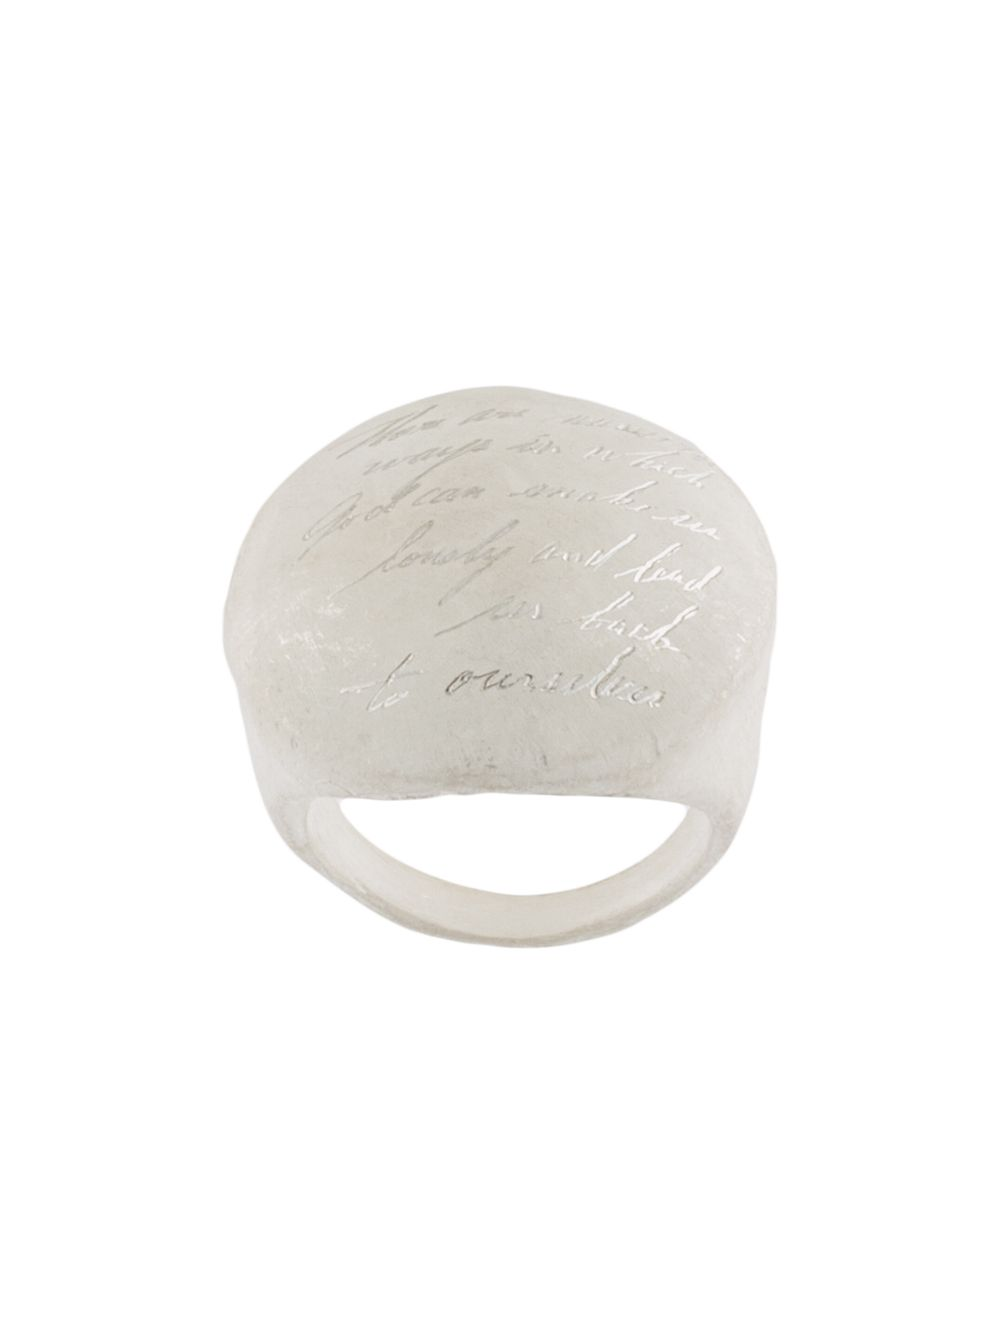 UMA WANG X DETAJ ROUND LUNA RING WITH HAND CARVED MESSEGE